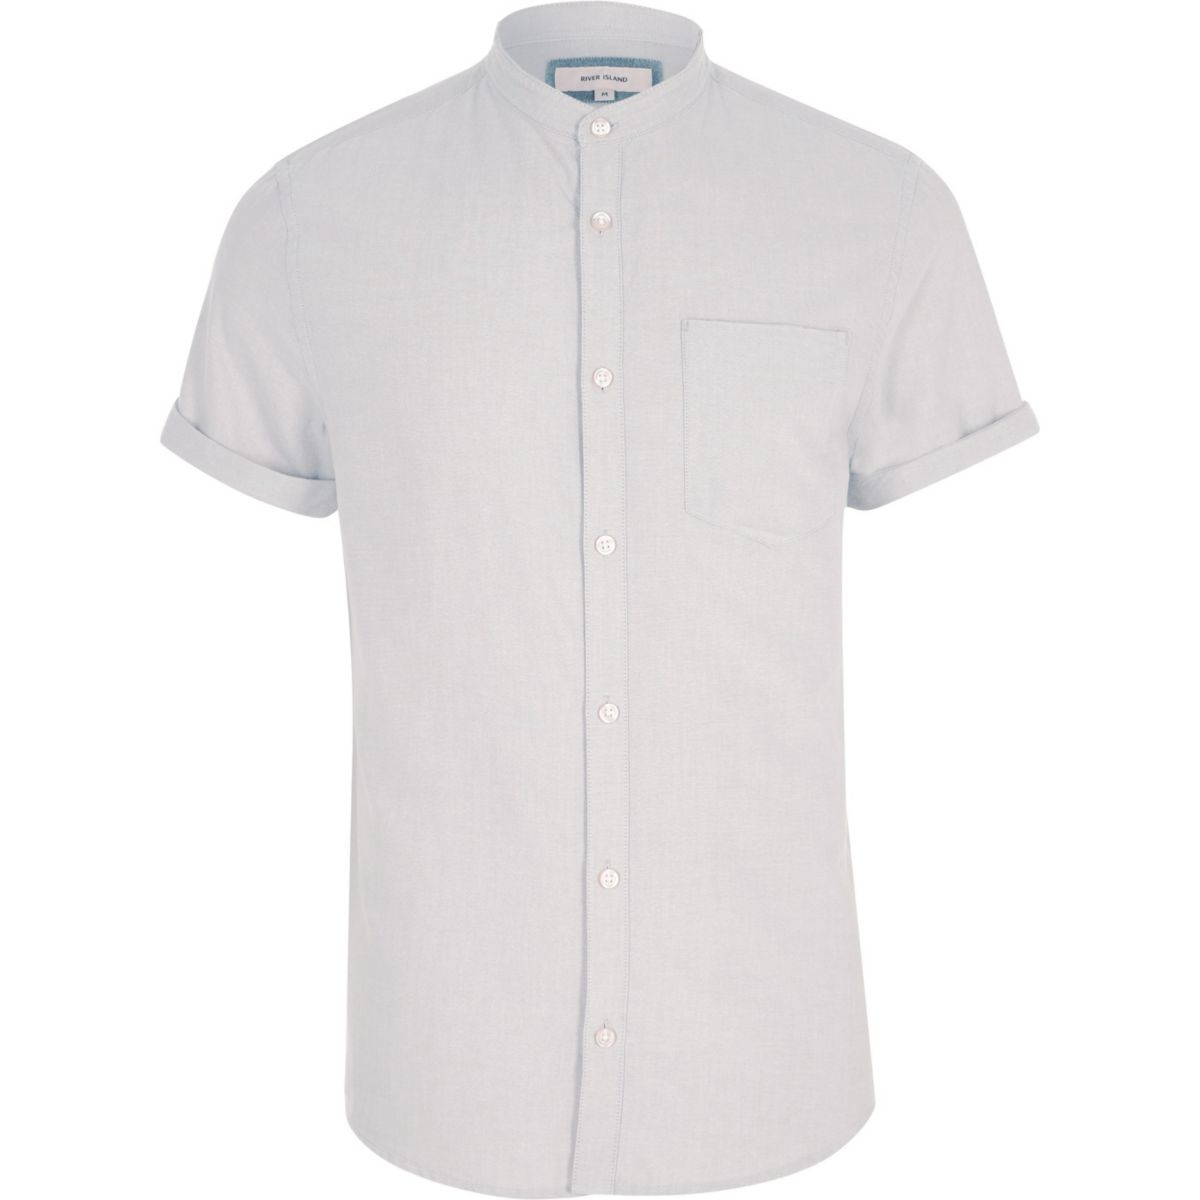 Grey short sleeve Oxford grandad shirt